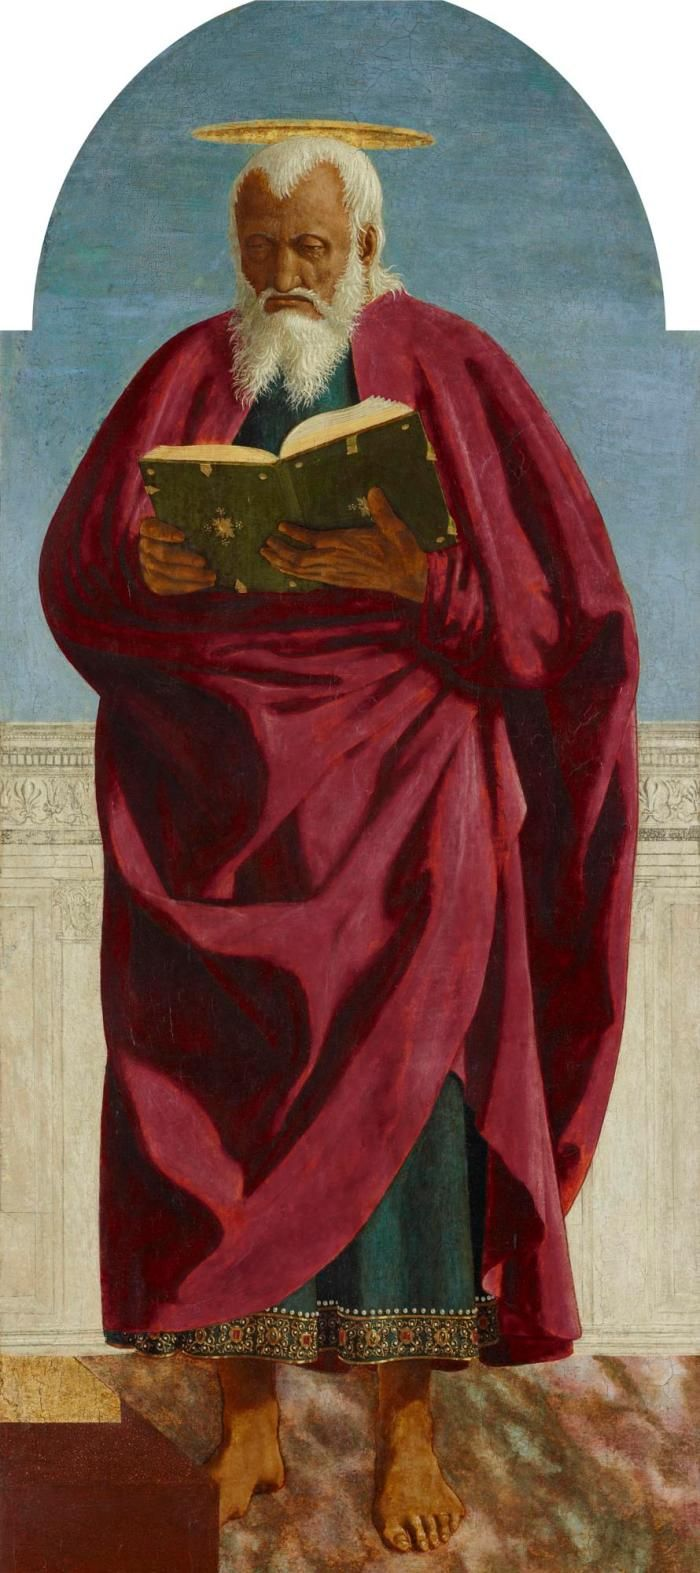 tempera painting of St. John the Evangelist wearing a crimson mantle and blue-green robe